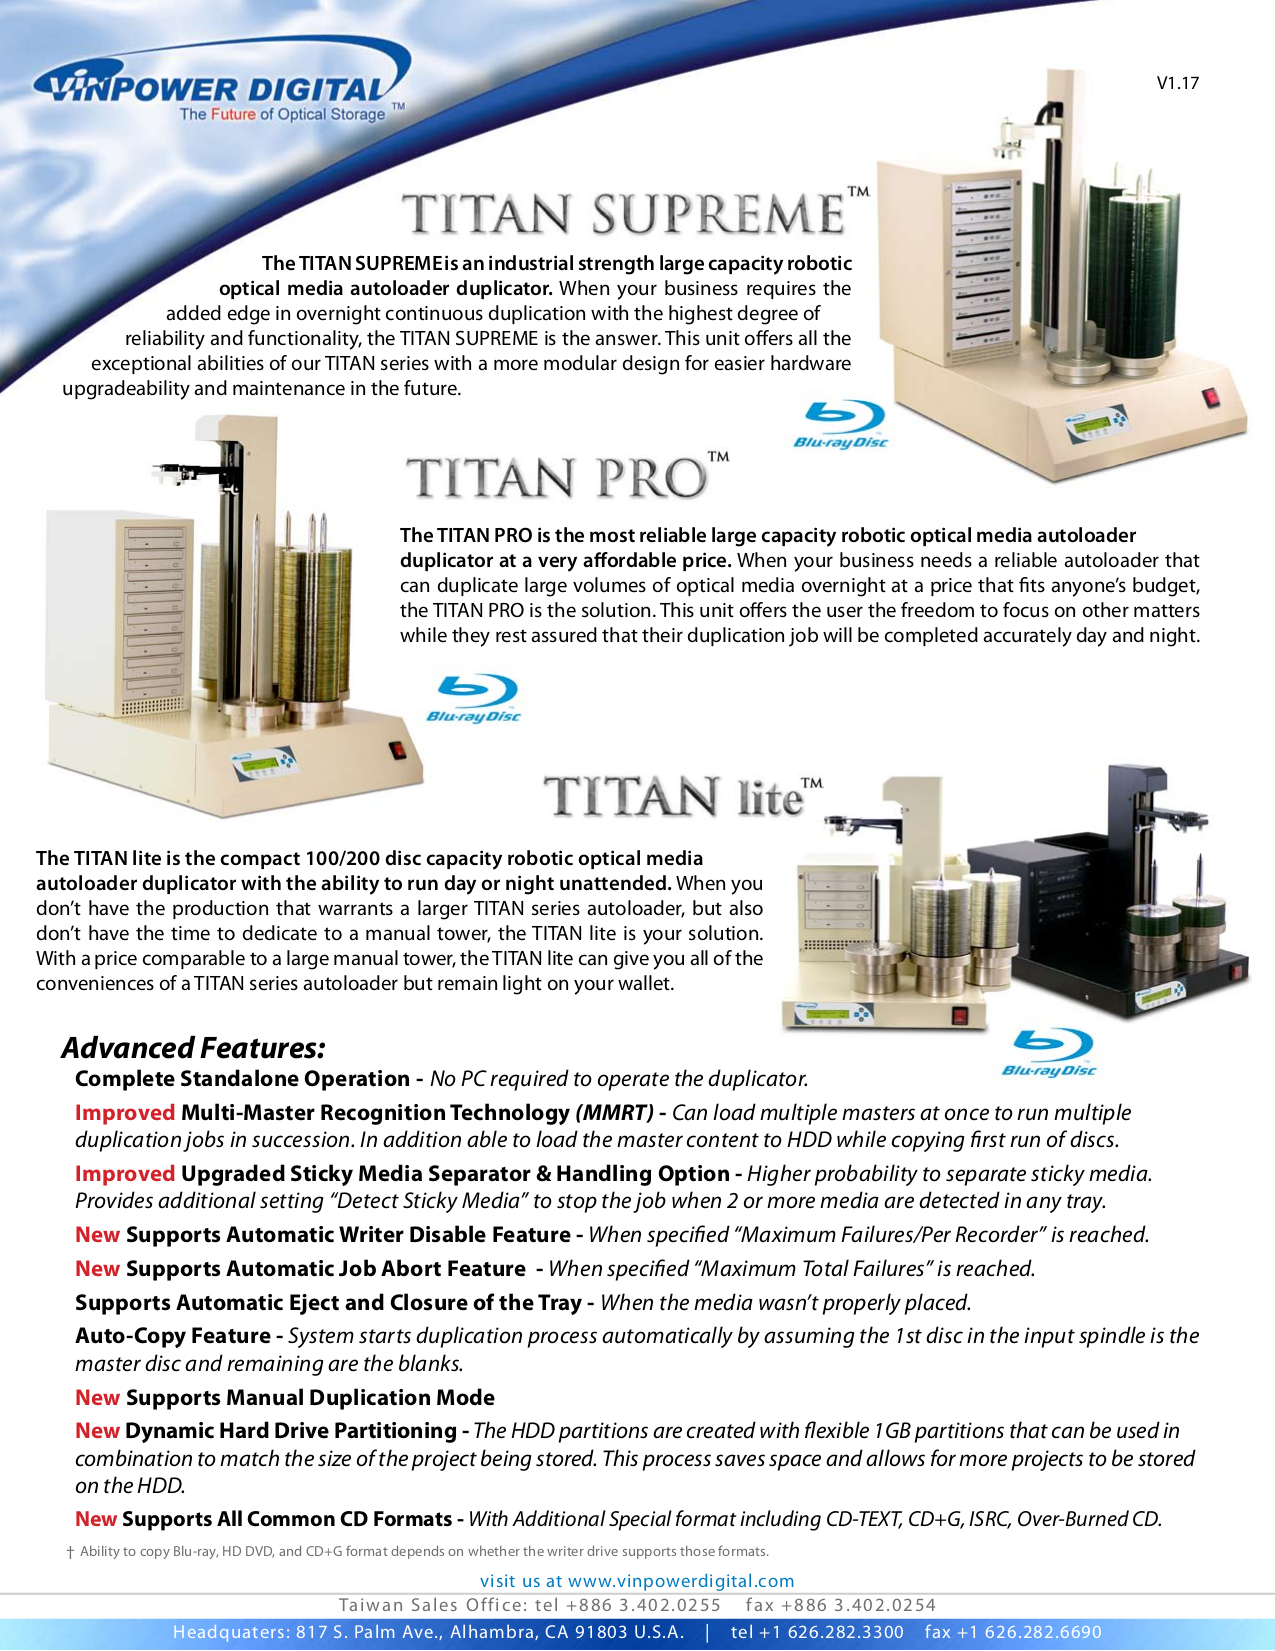 pdf for Vinpower Other TITAN SUPREME Robotic Autoloaders manual